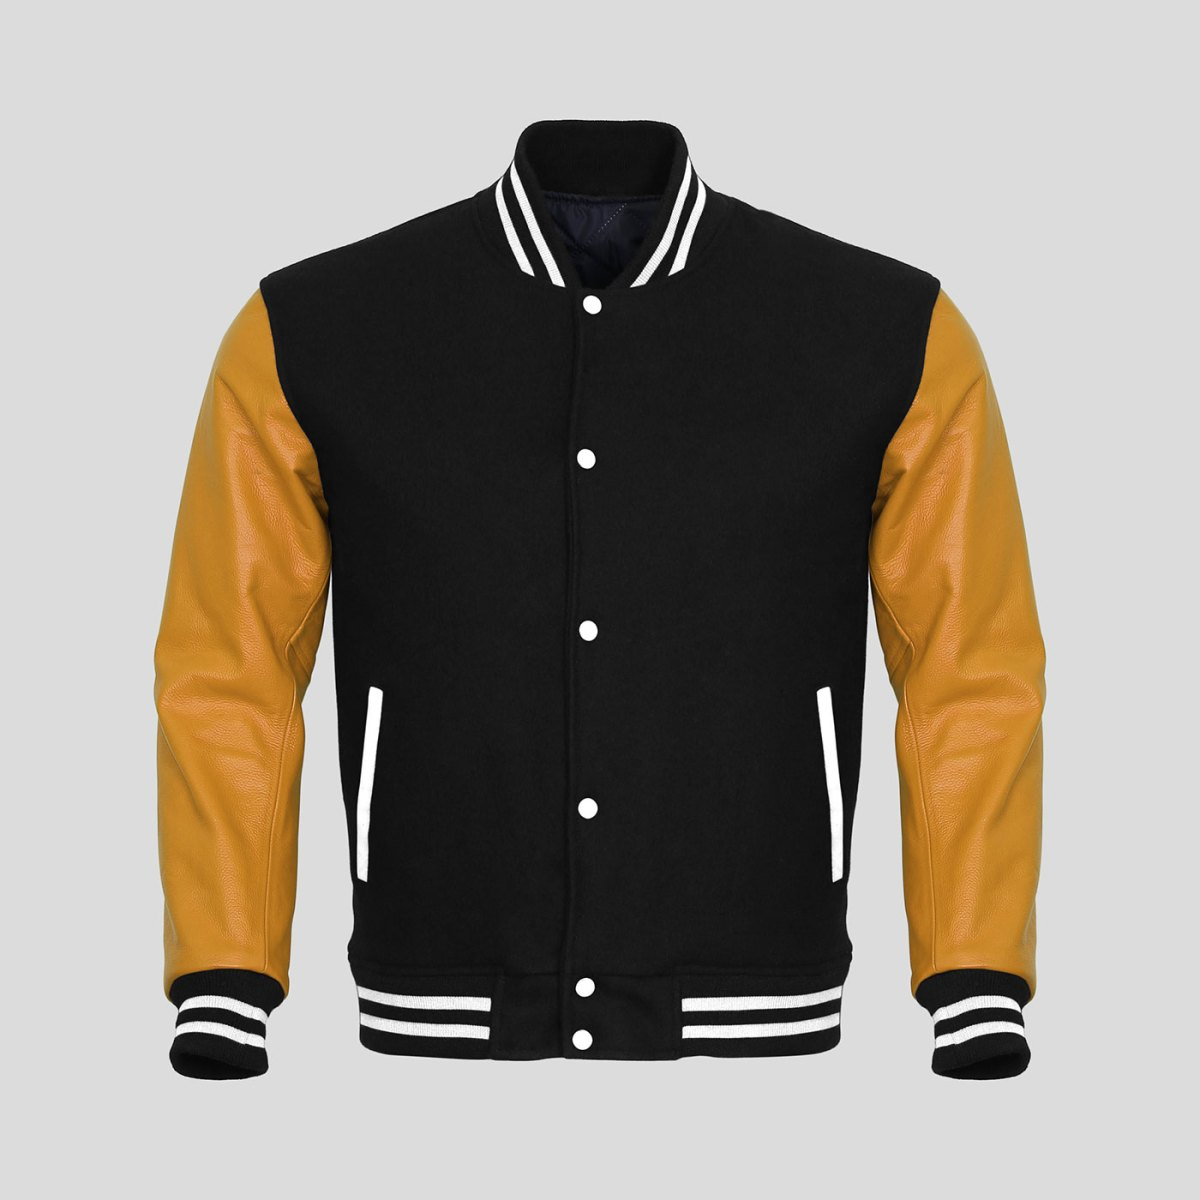 Wool jacket leather sleeves